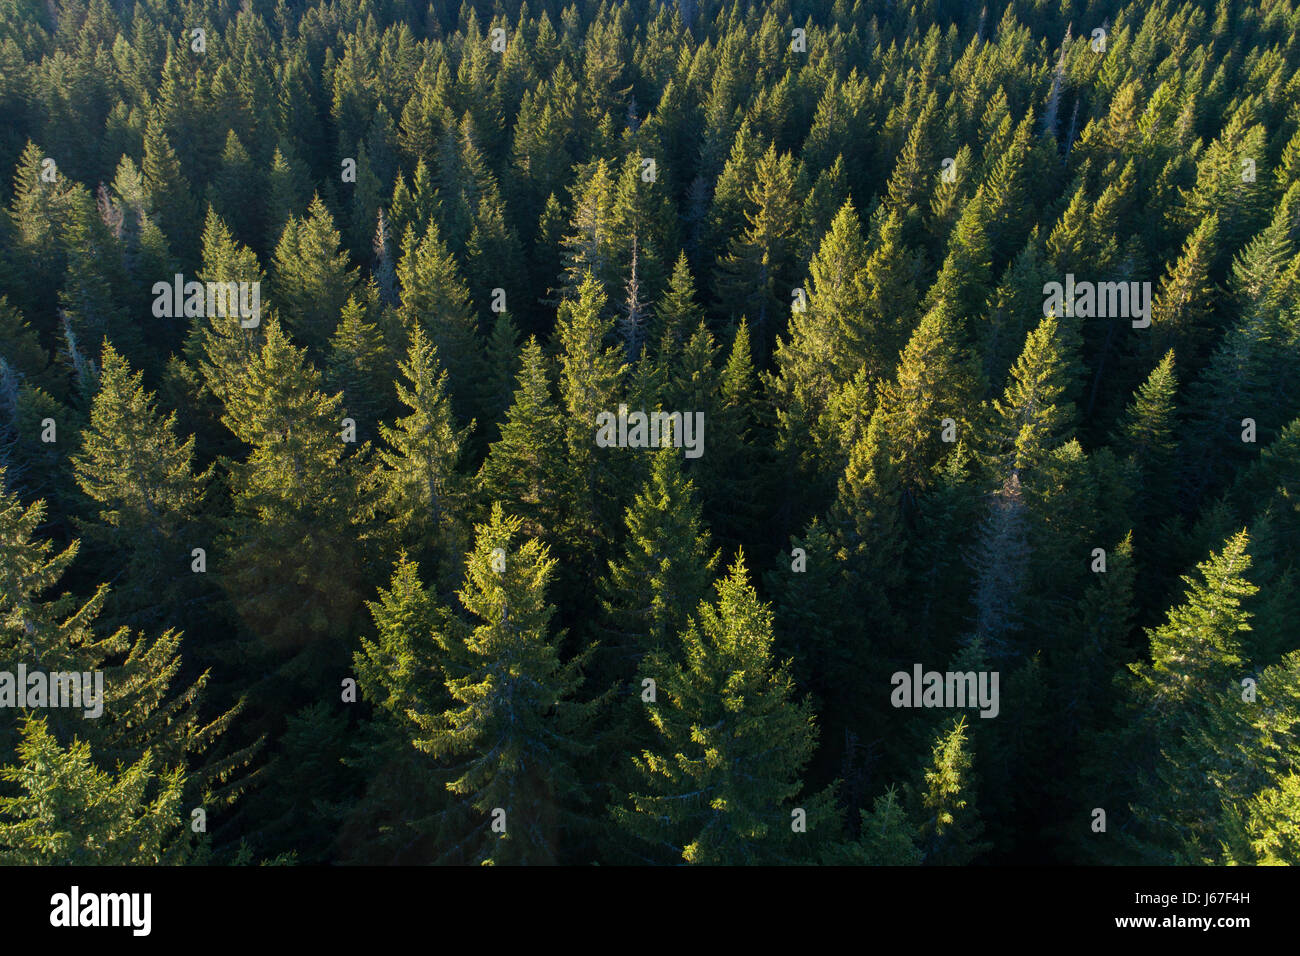 Aerial view of evergreen trees. - Stock Image